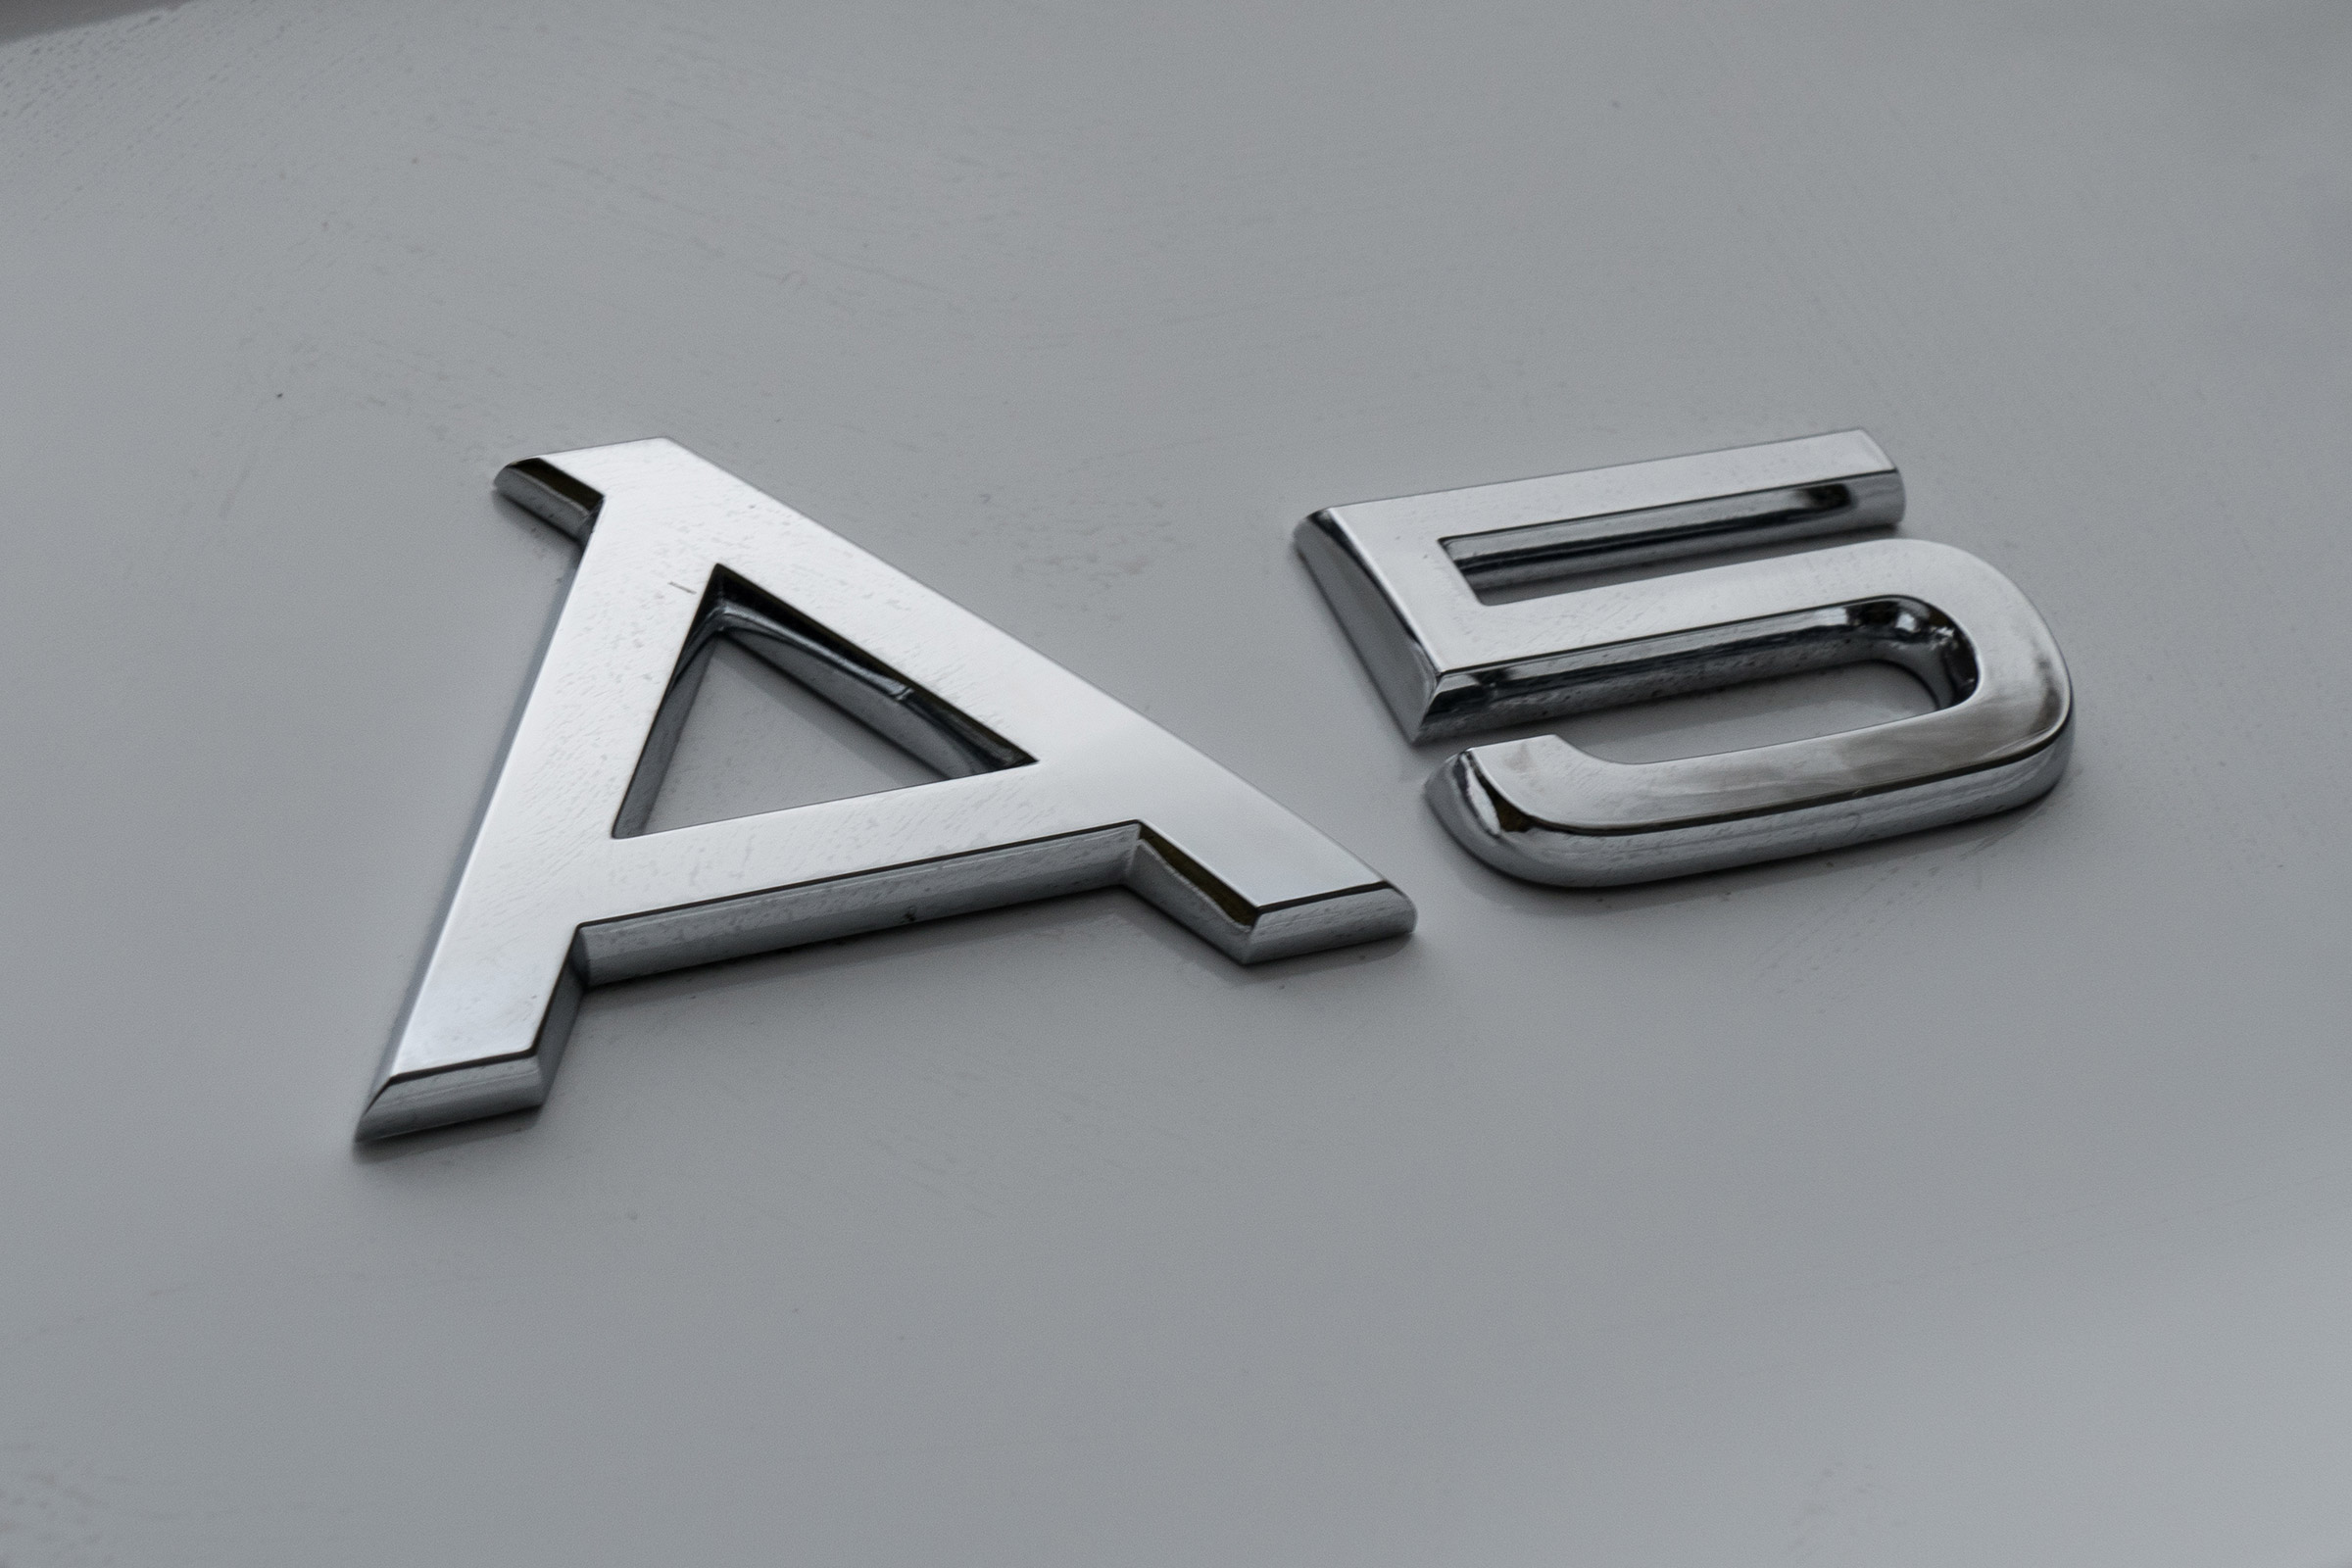 2017 Audi A5 Coupe Exterior View Rear Emblem (Photo 21 of 21)